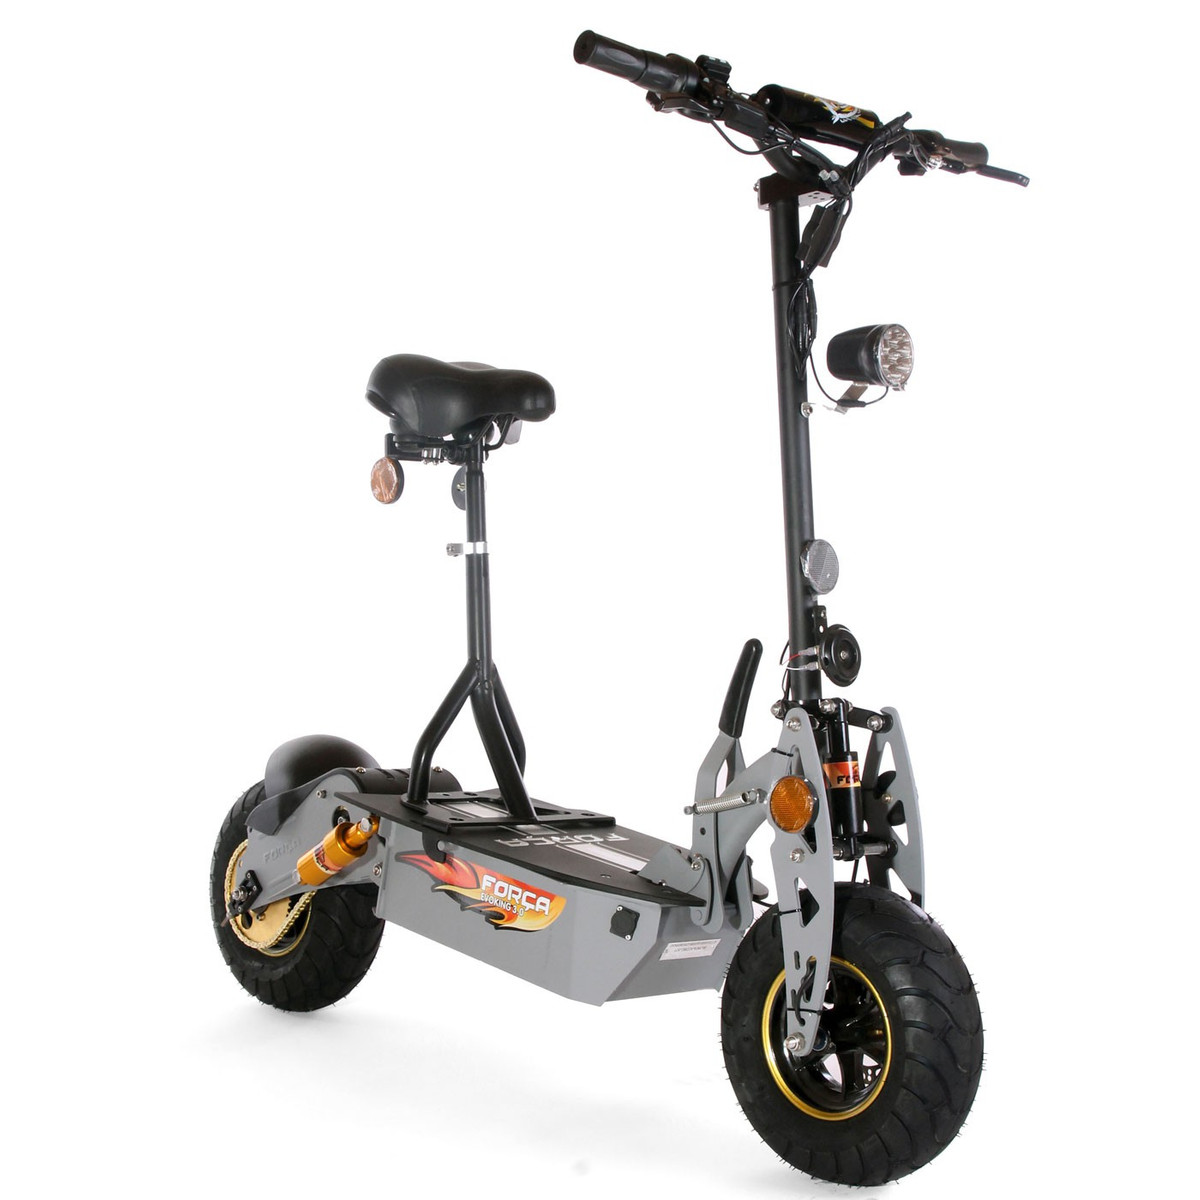 FORCA EVOKING-1600 ElektroScooter E-Scooter XL-Reifen BLACK